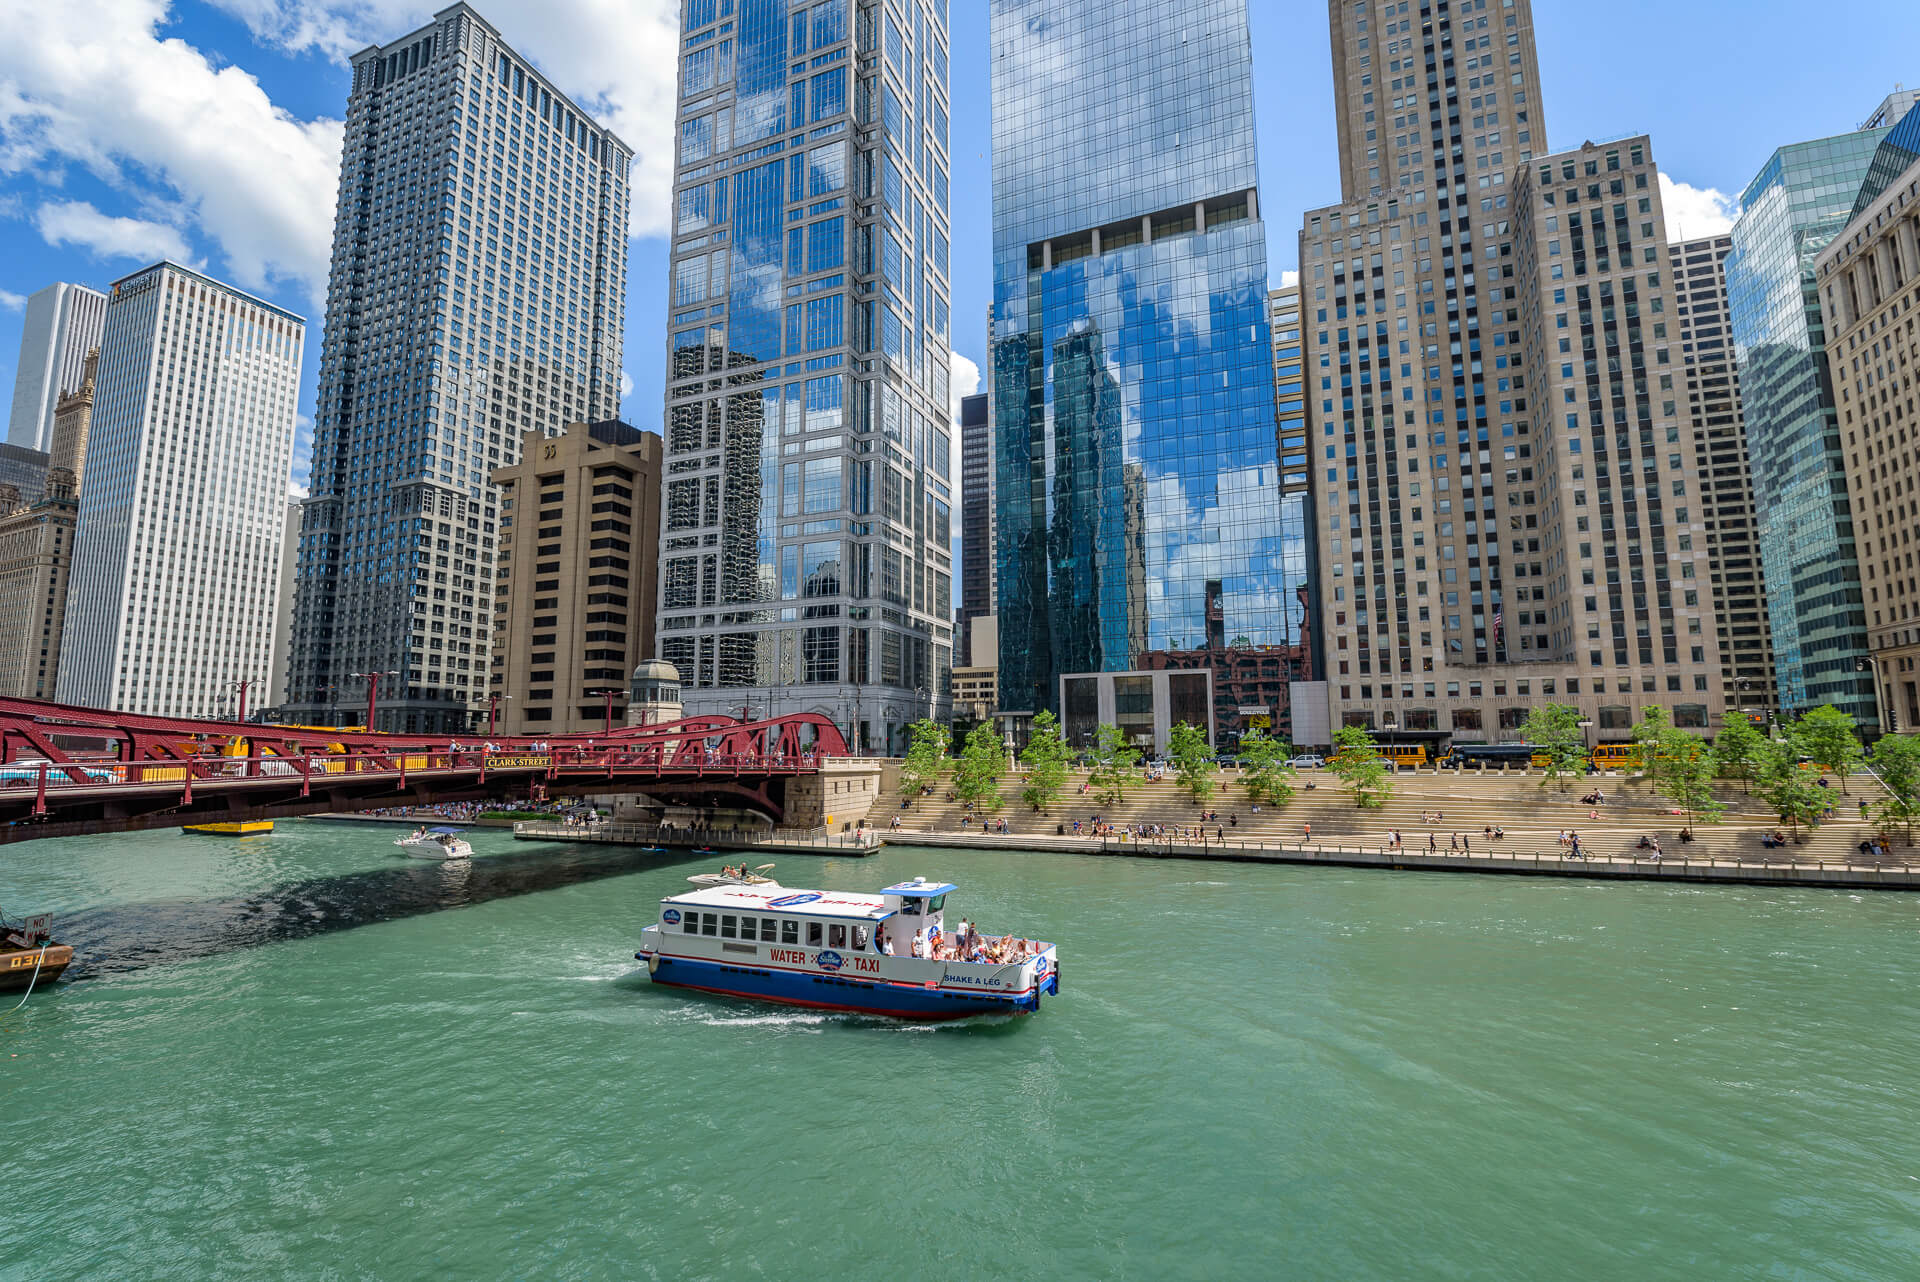 Chicago River and buildings